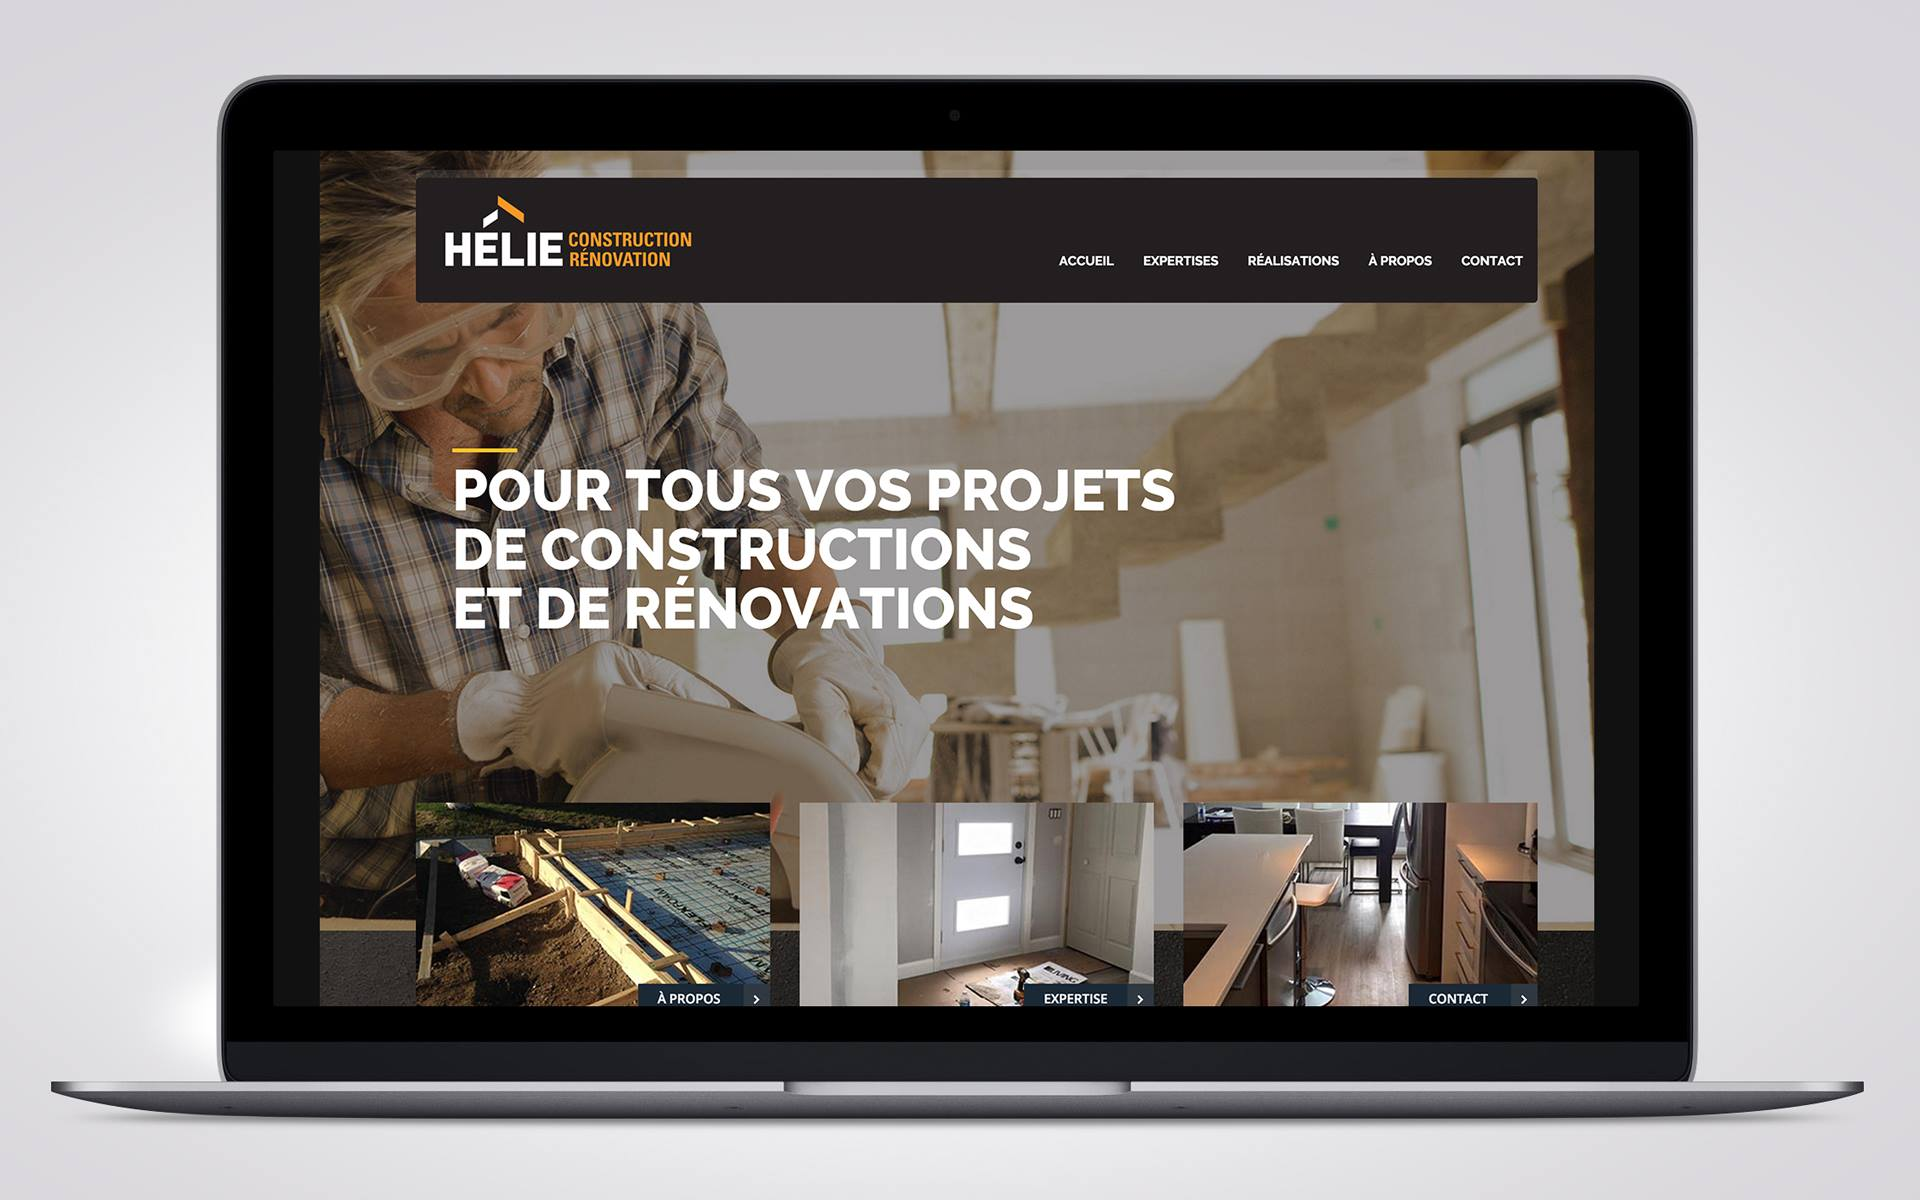 HelieConstructionRenovationC